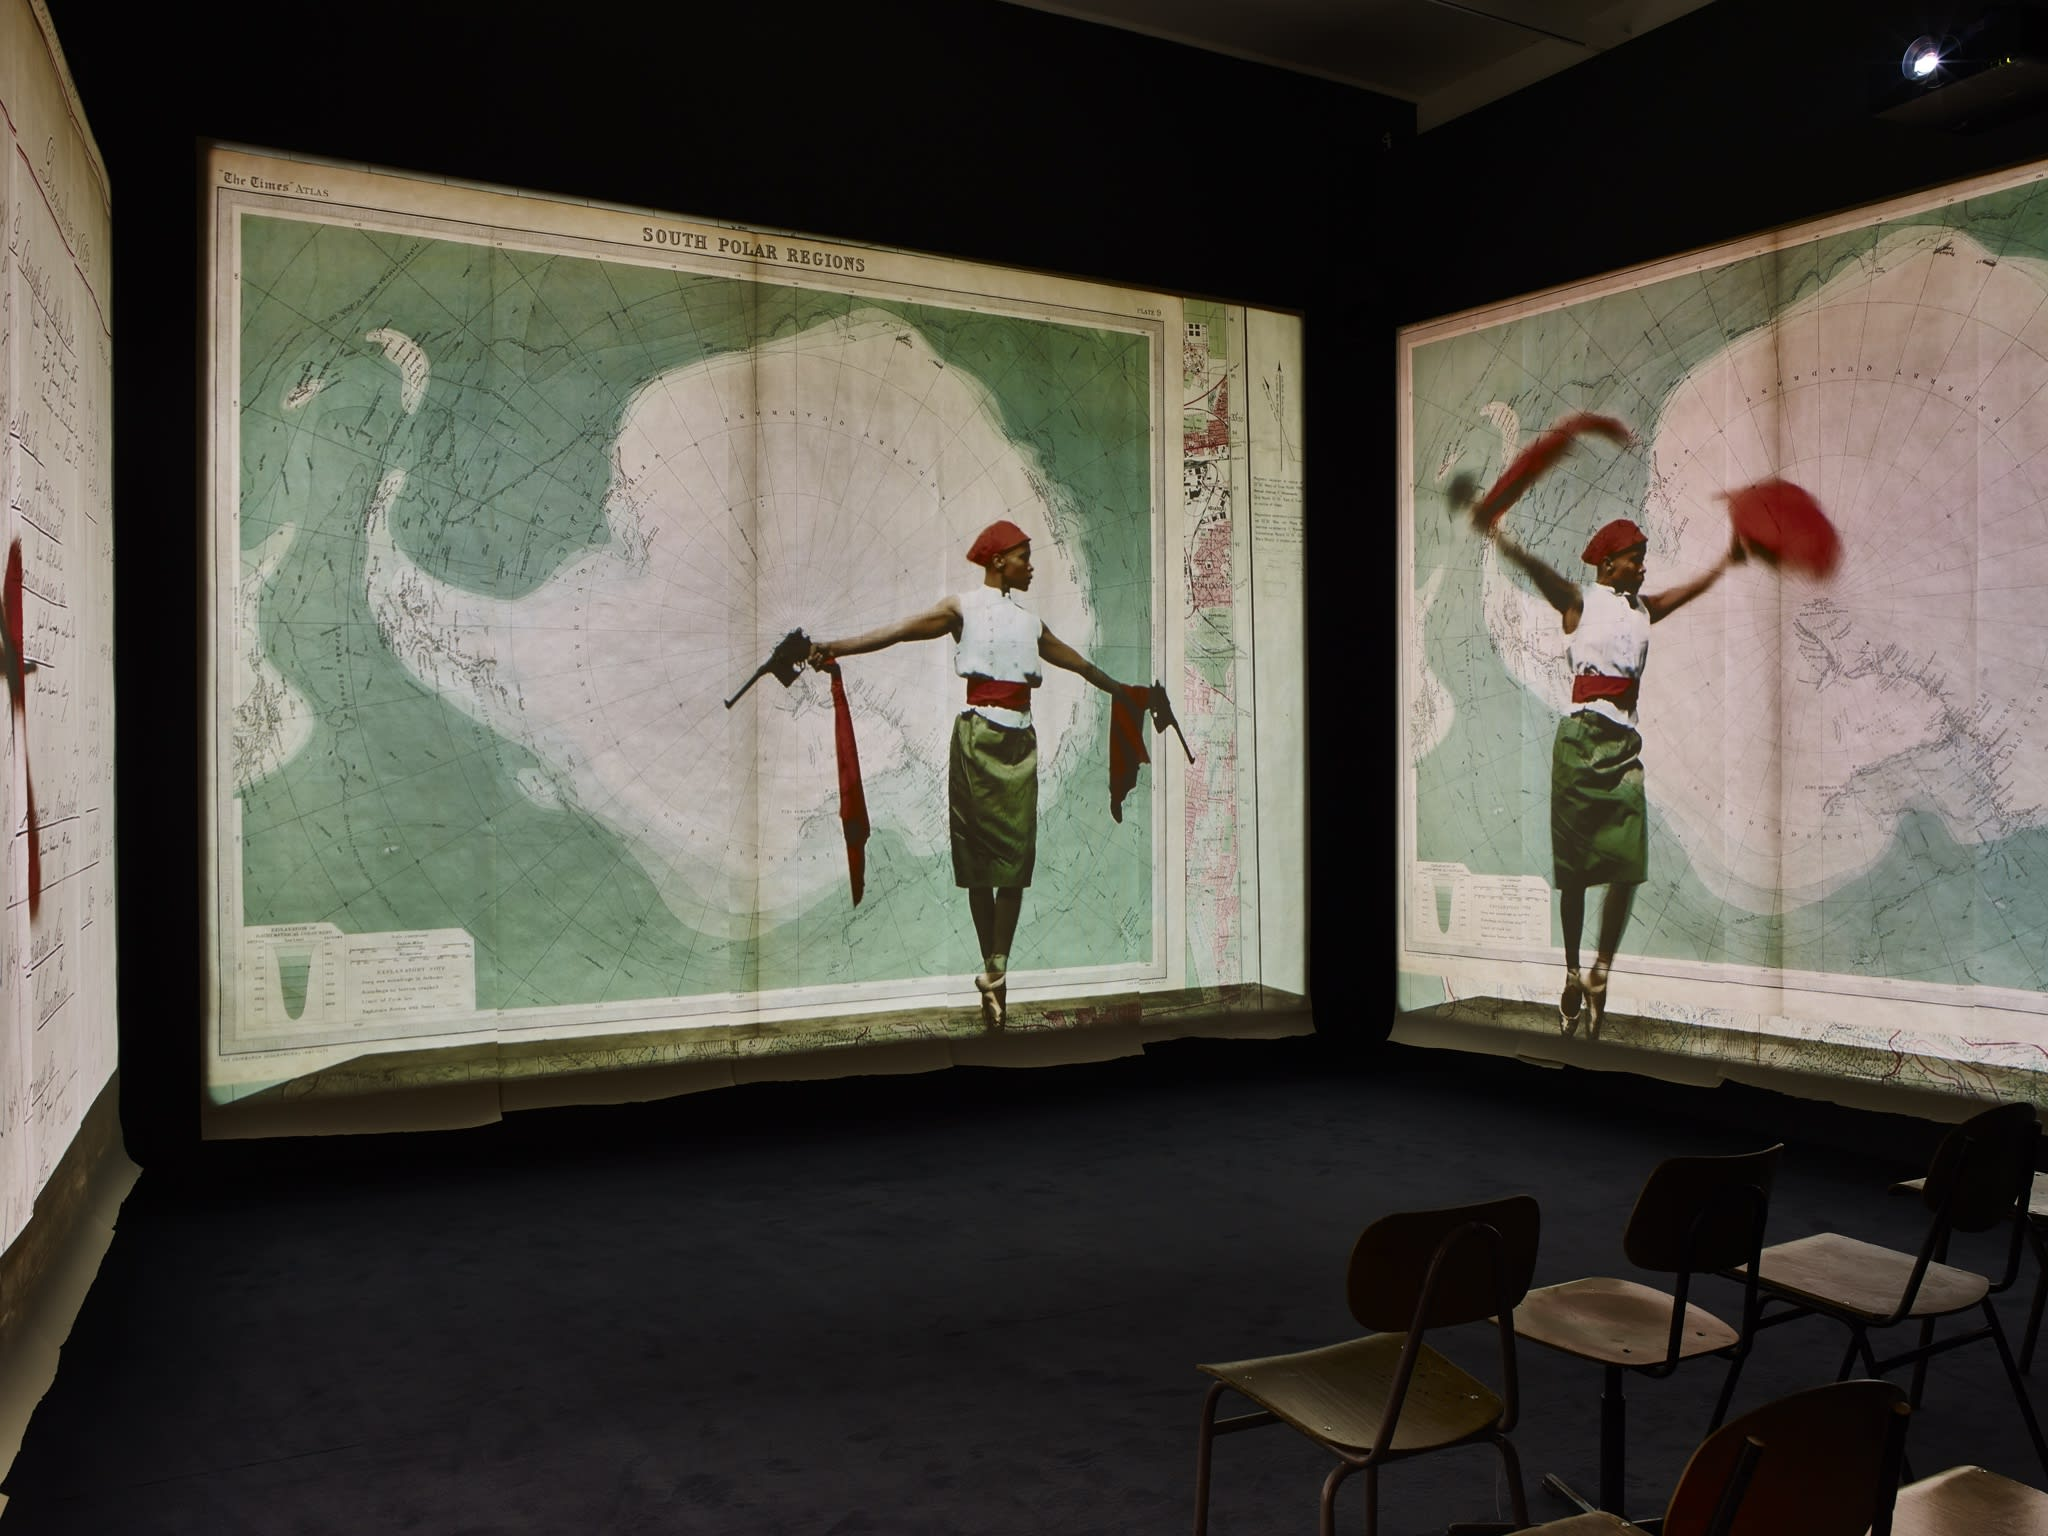 William Kentridge More Sweetly Play the Dance